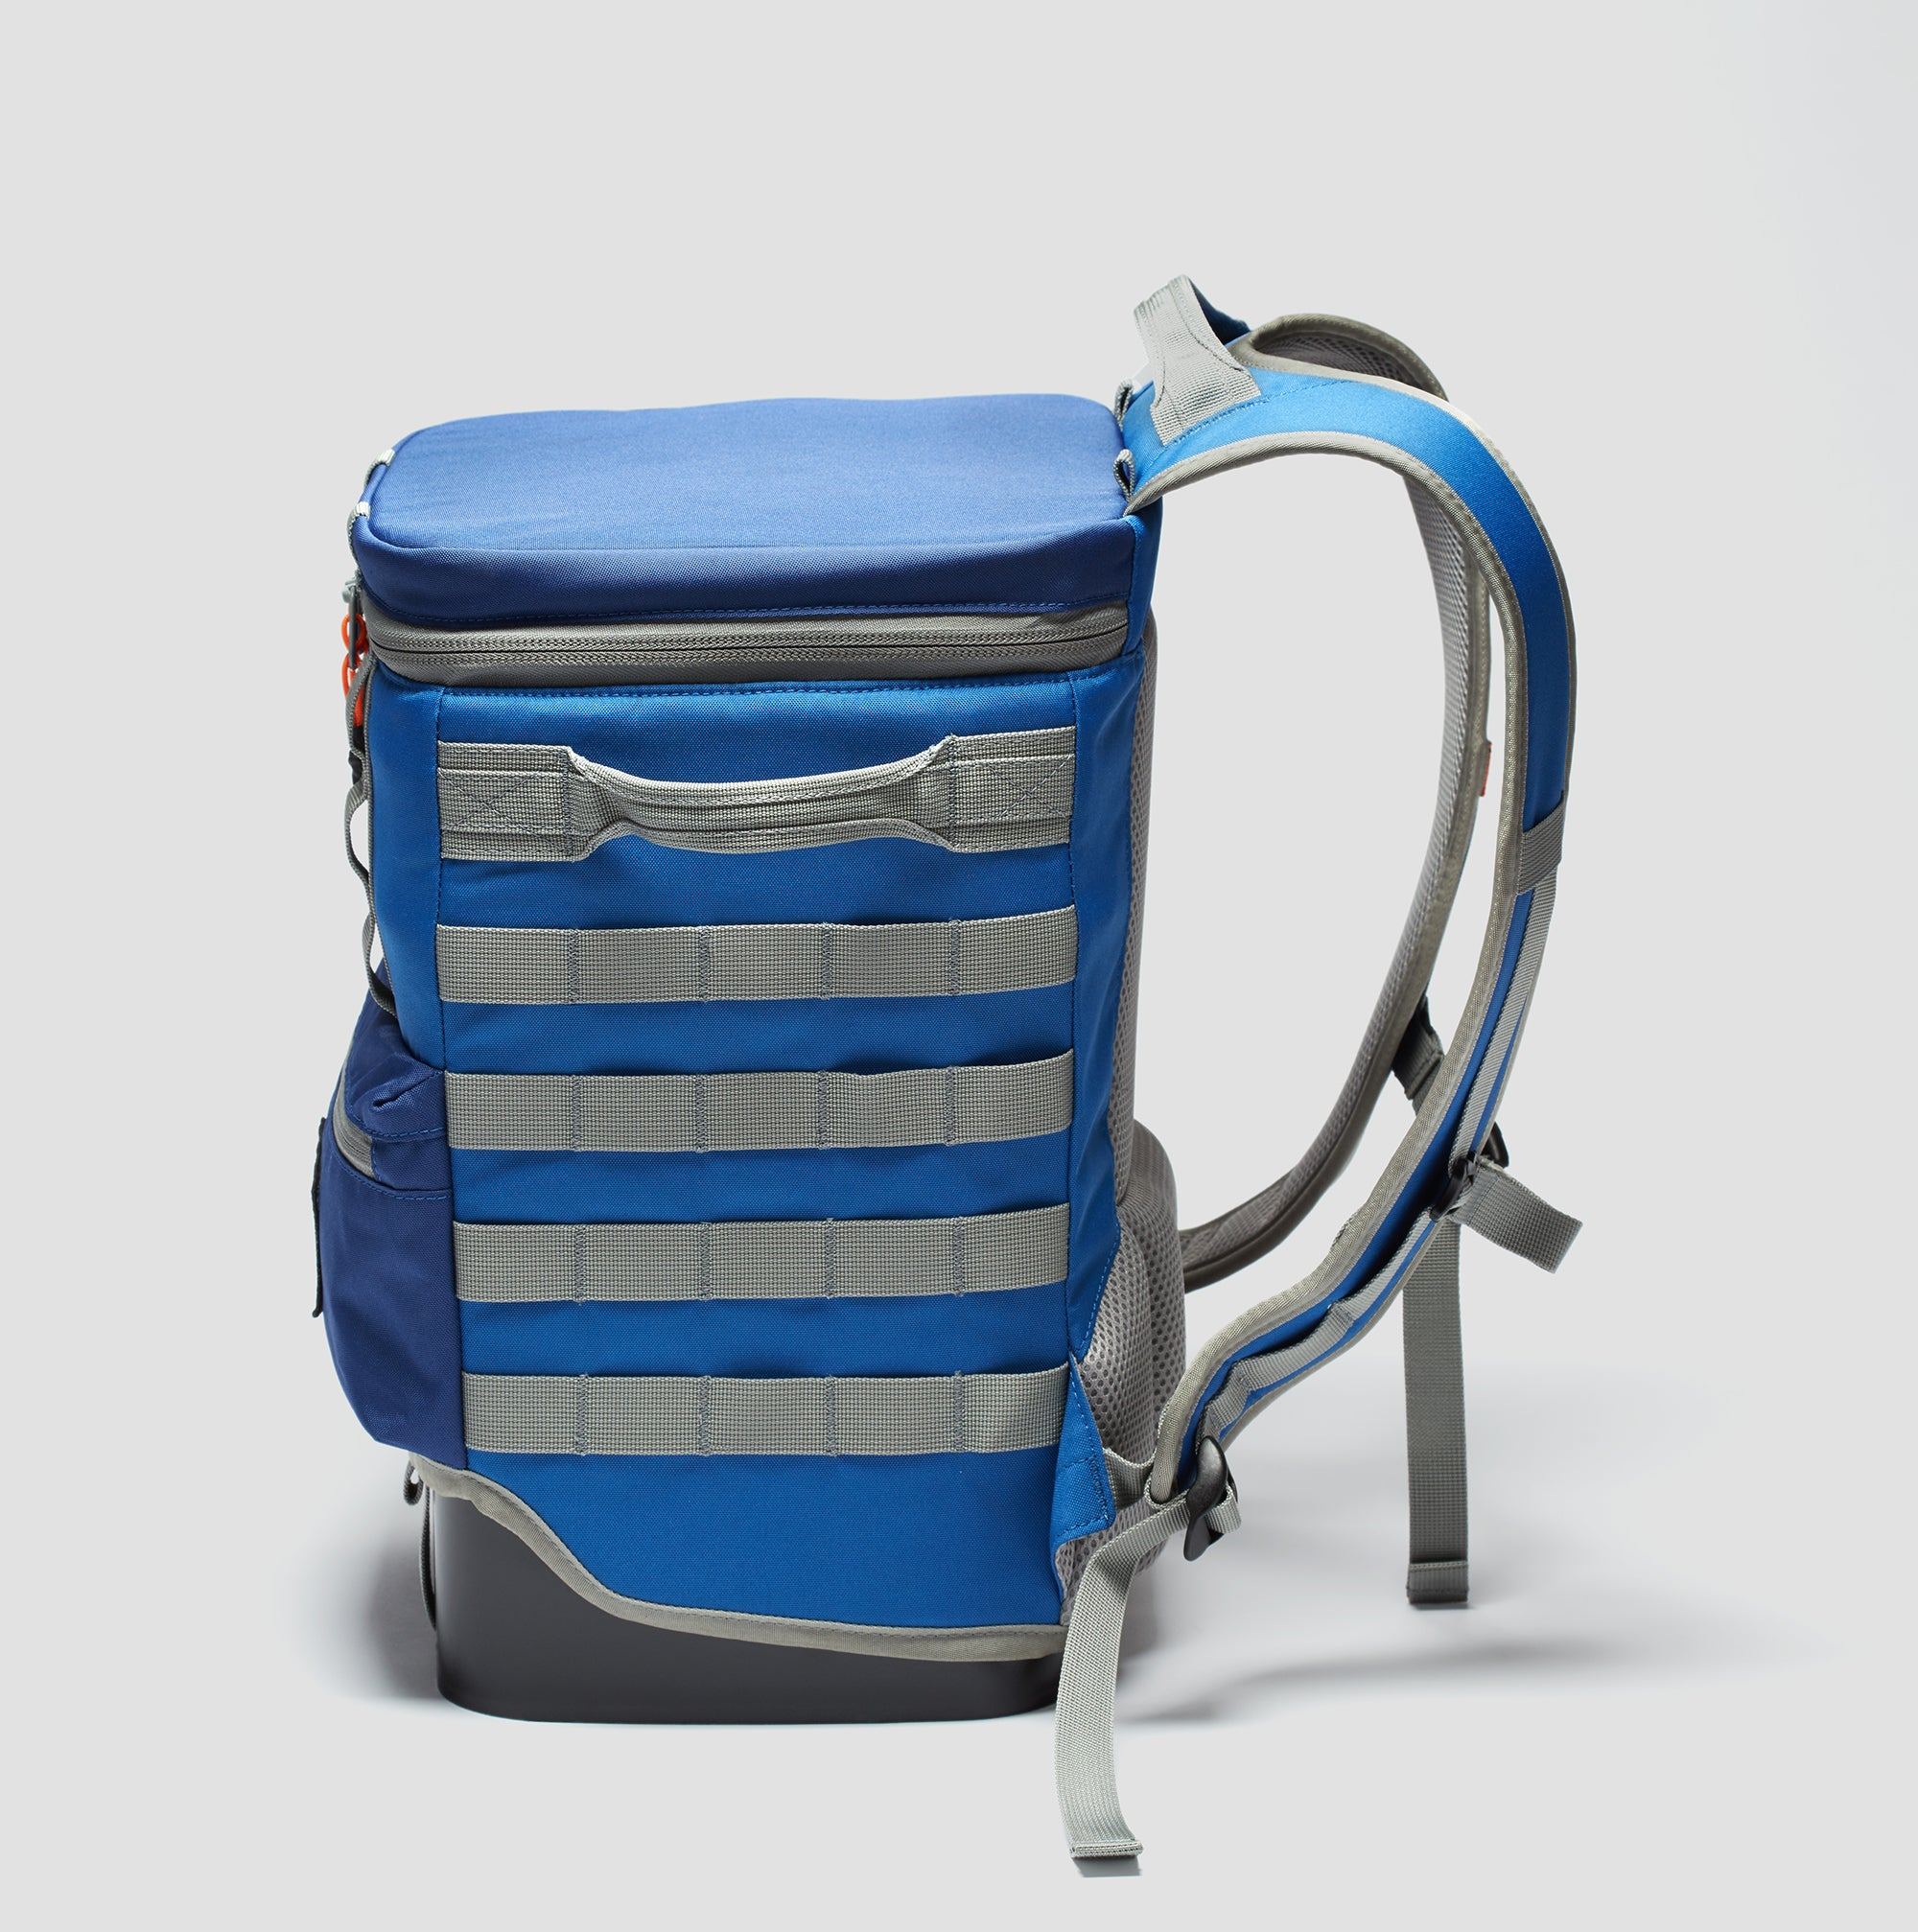 Ruckbucket Cooler